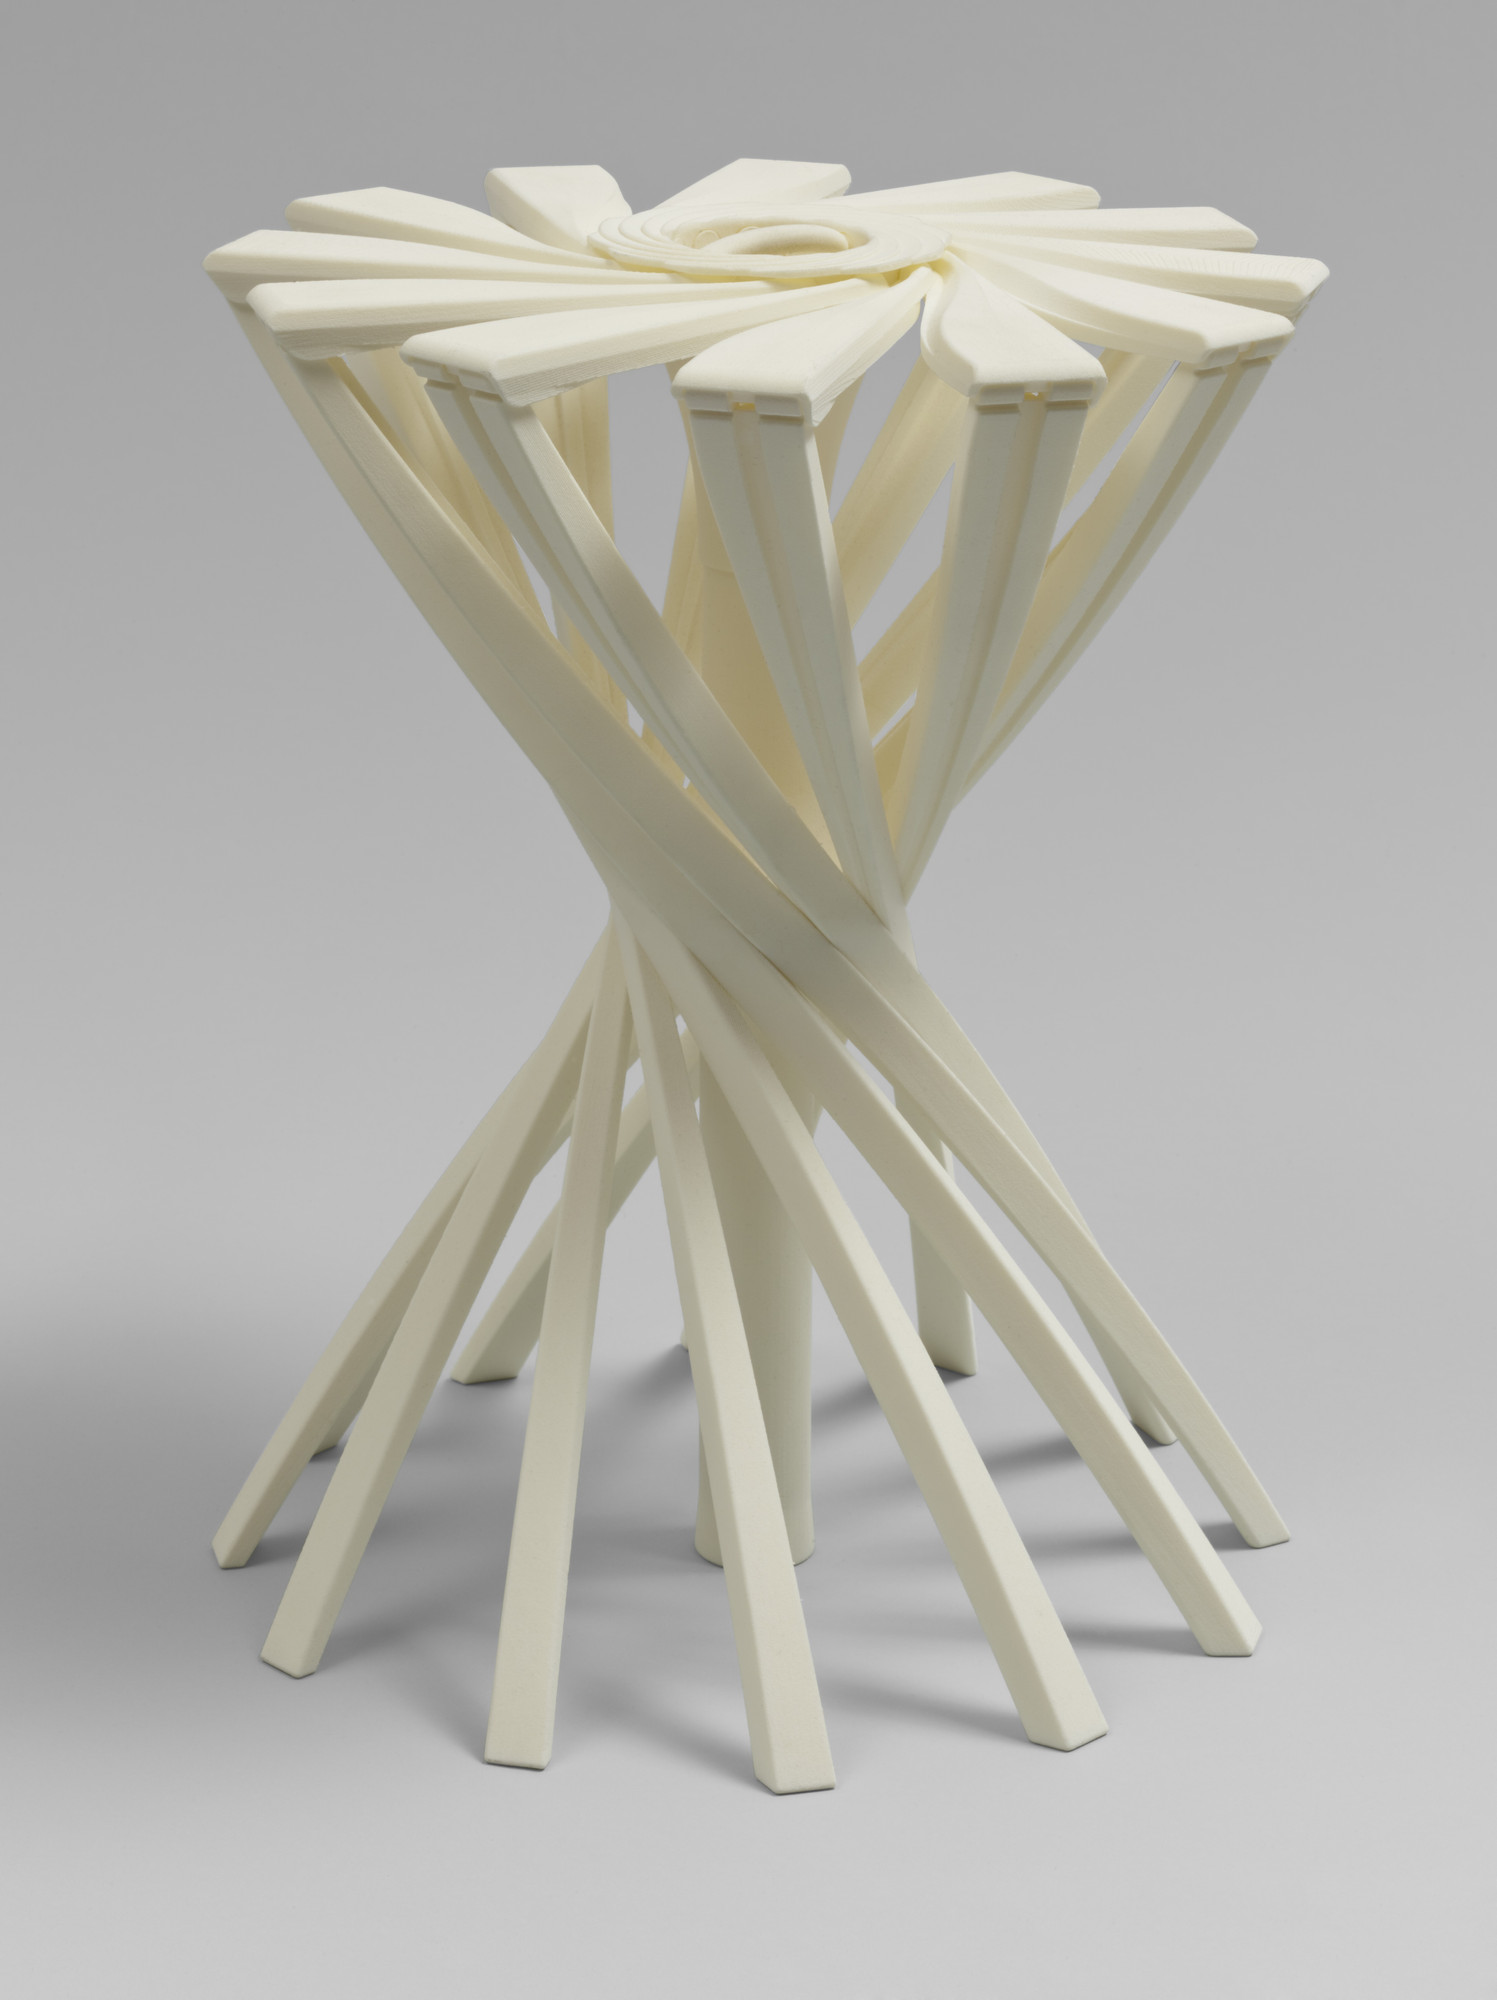 Patrick Jouin. One_shot.MGX Stool. 2006